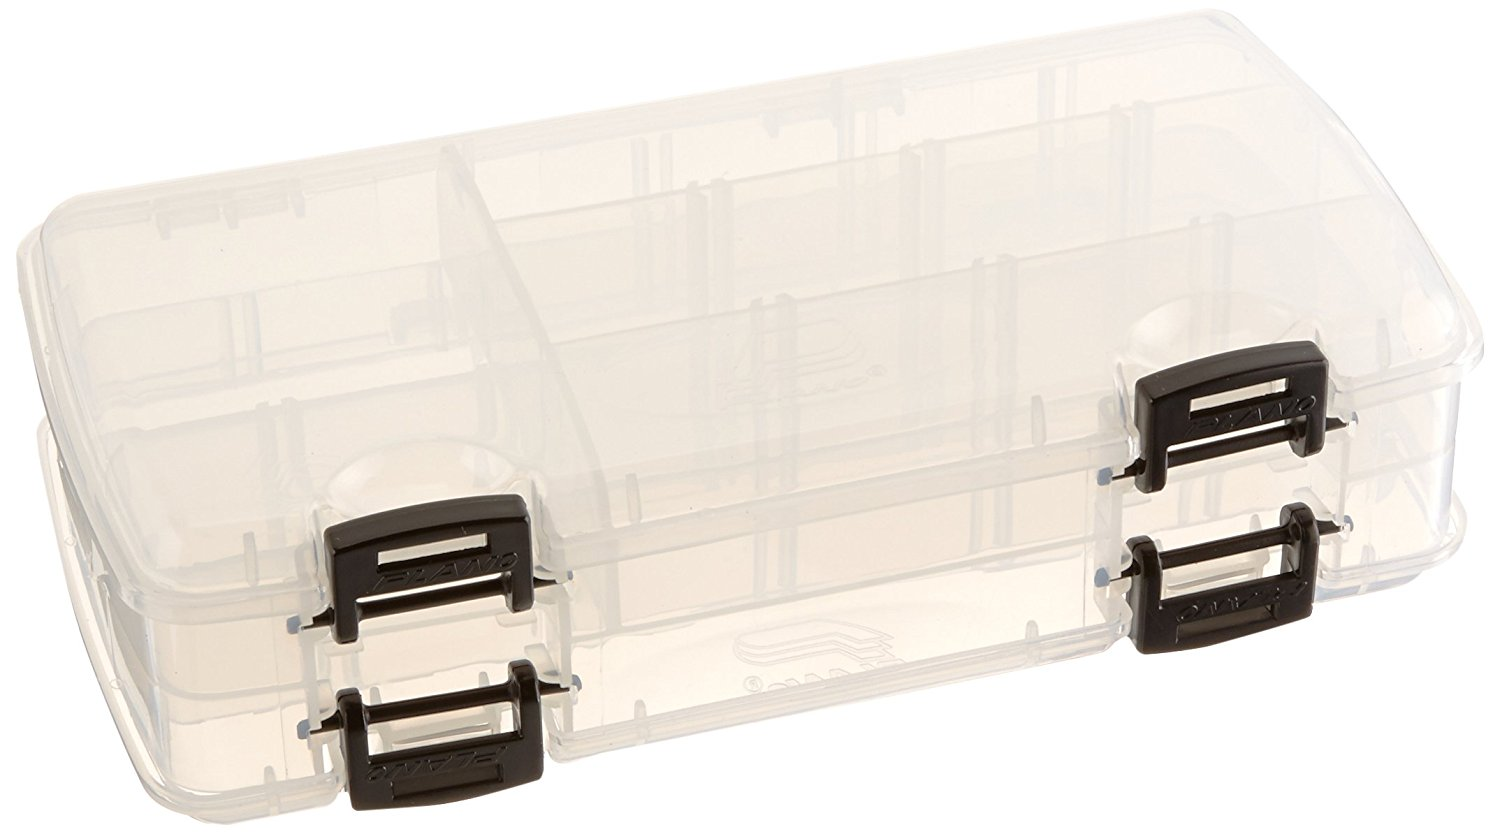 3500 22 double sided tackle box9 23 adjustable compartments by plano